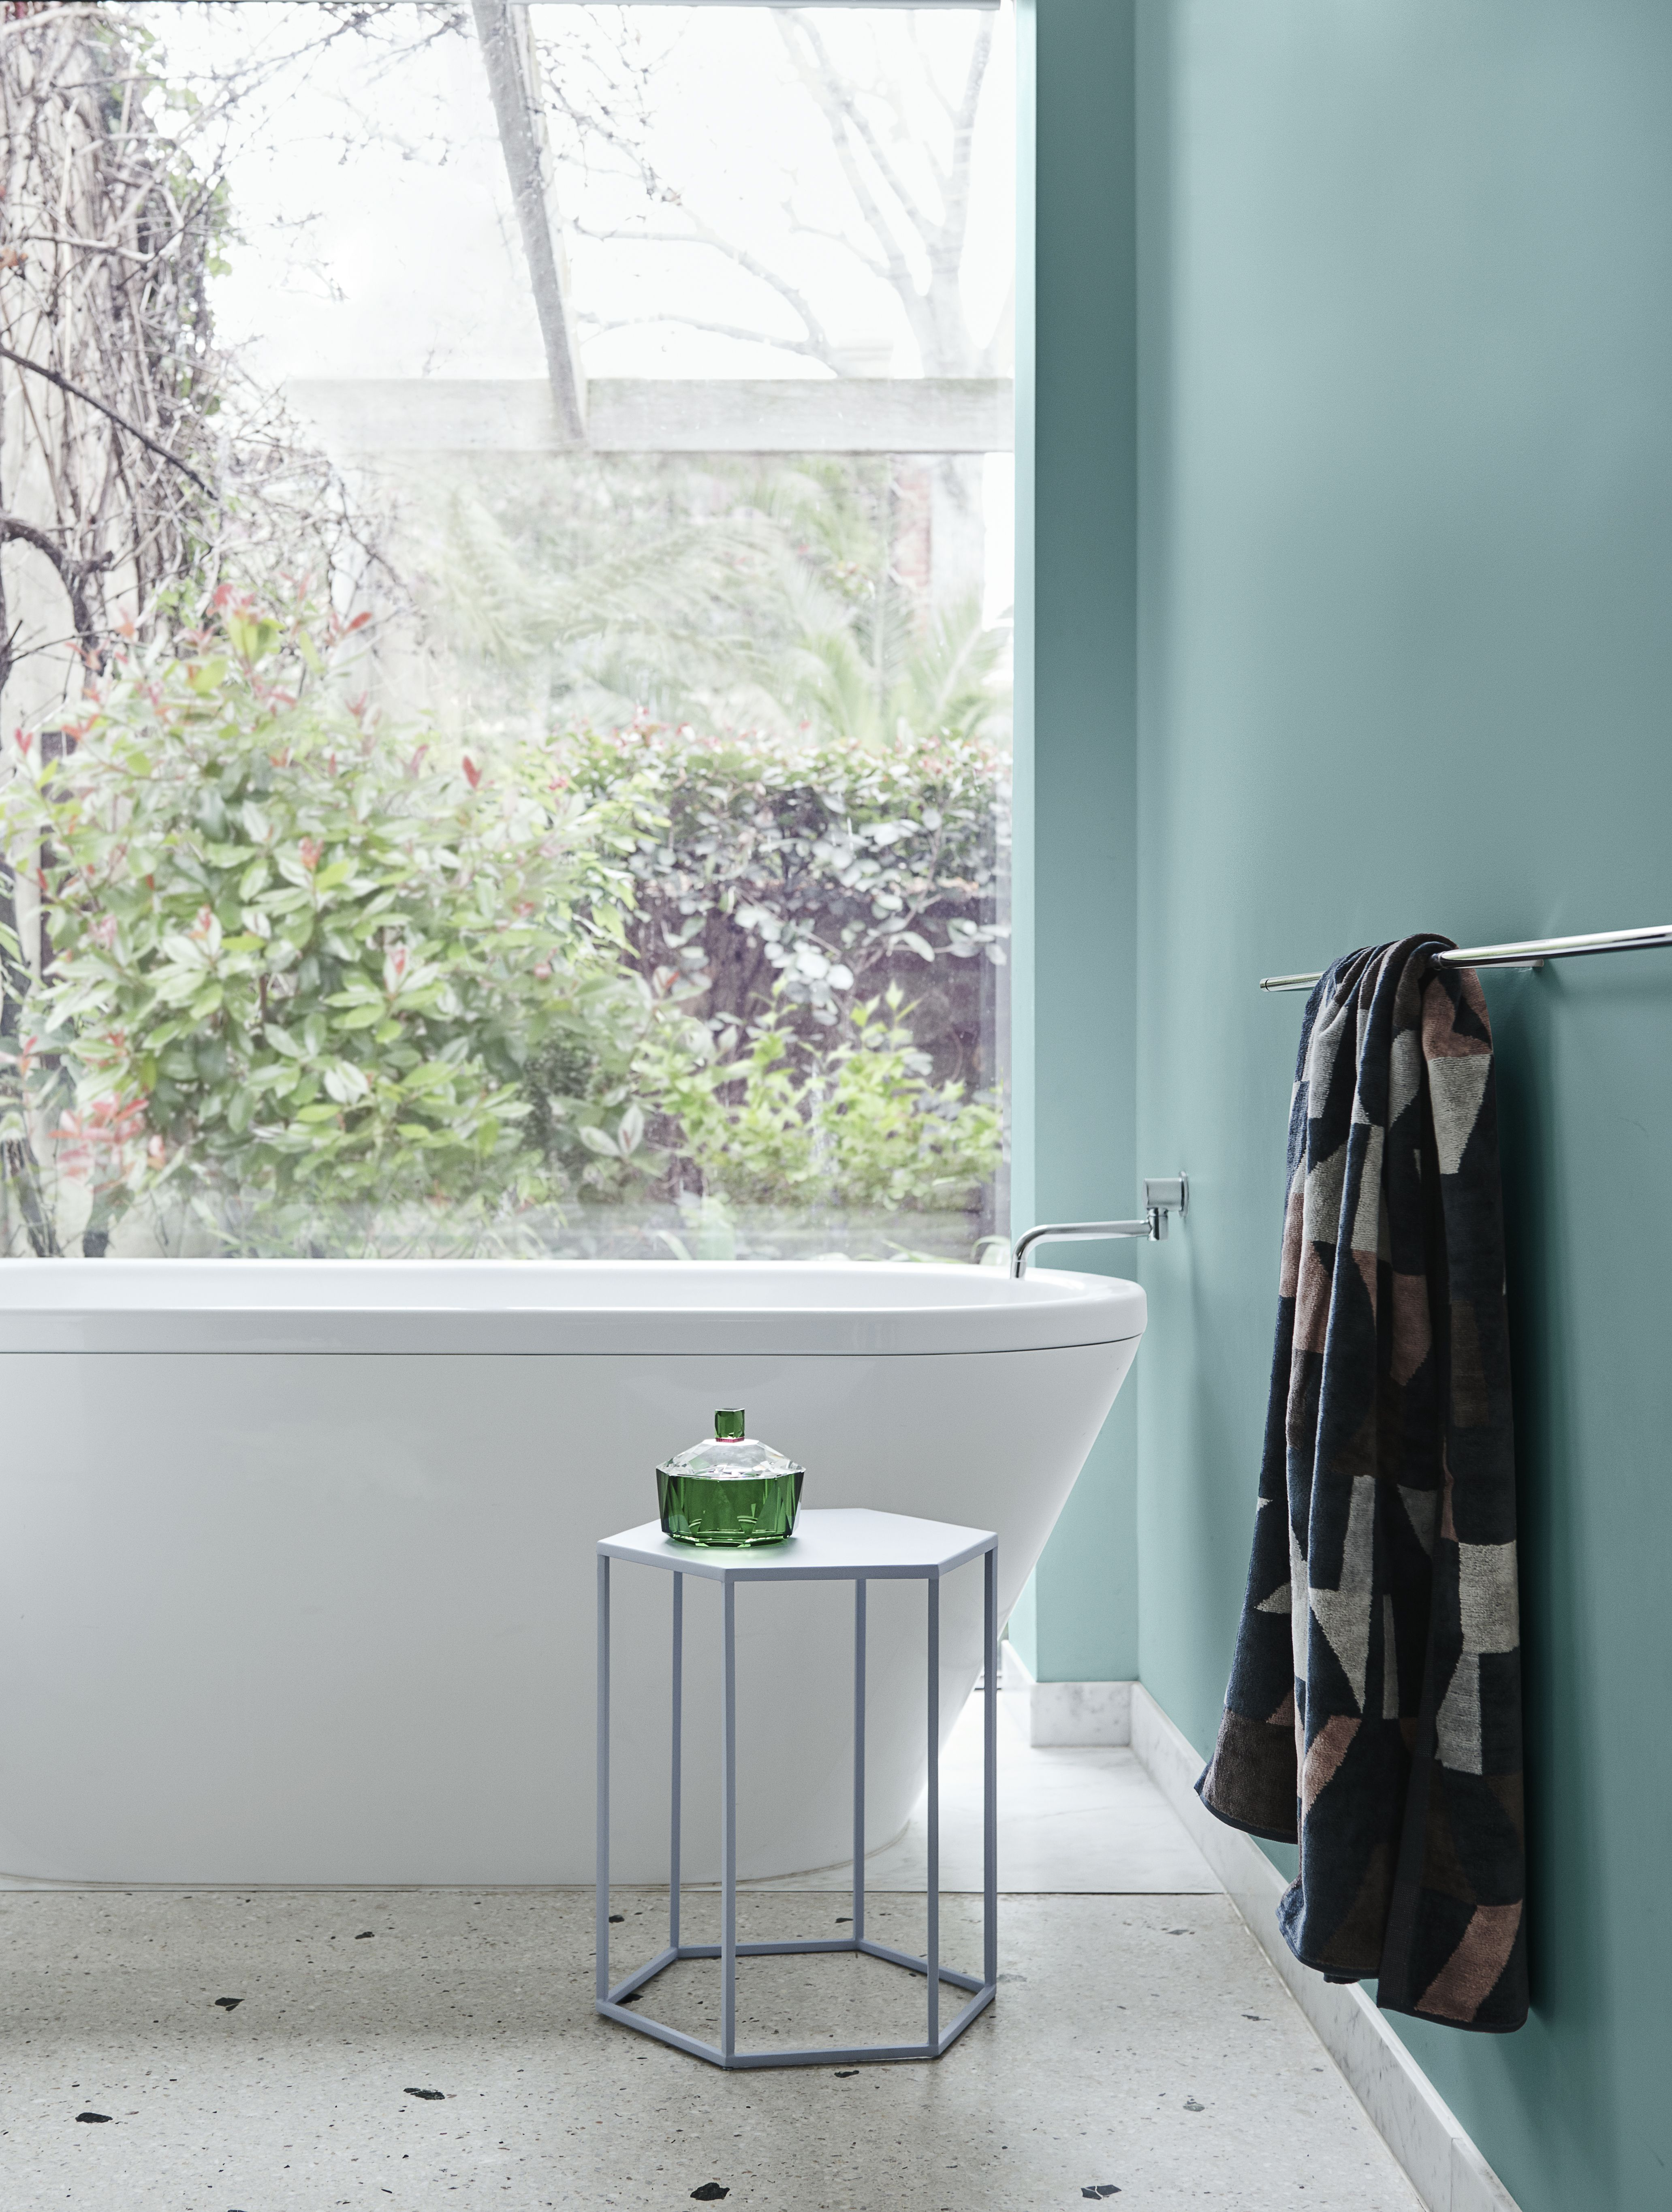 Charming Green Bathroom With Outside Garden Views Dulux Colour Dulux Color Forecasting